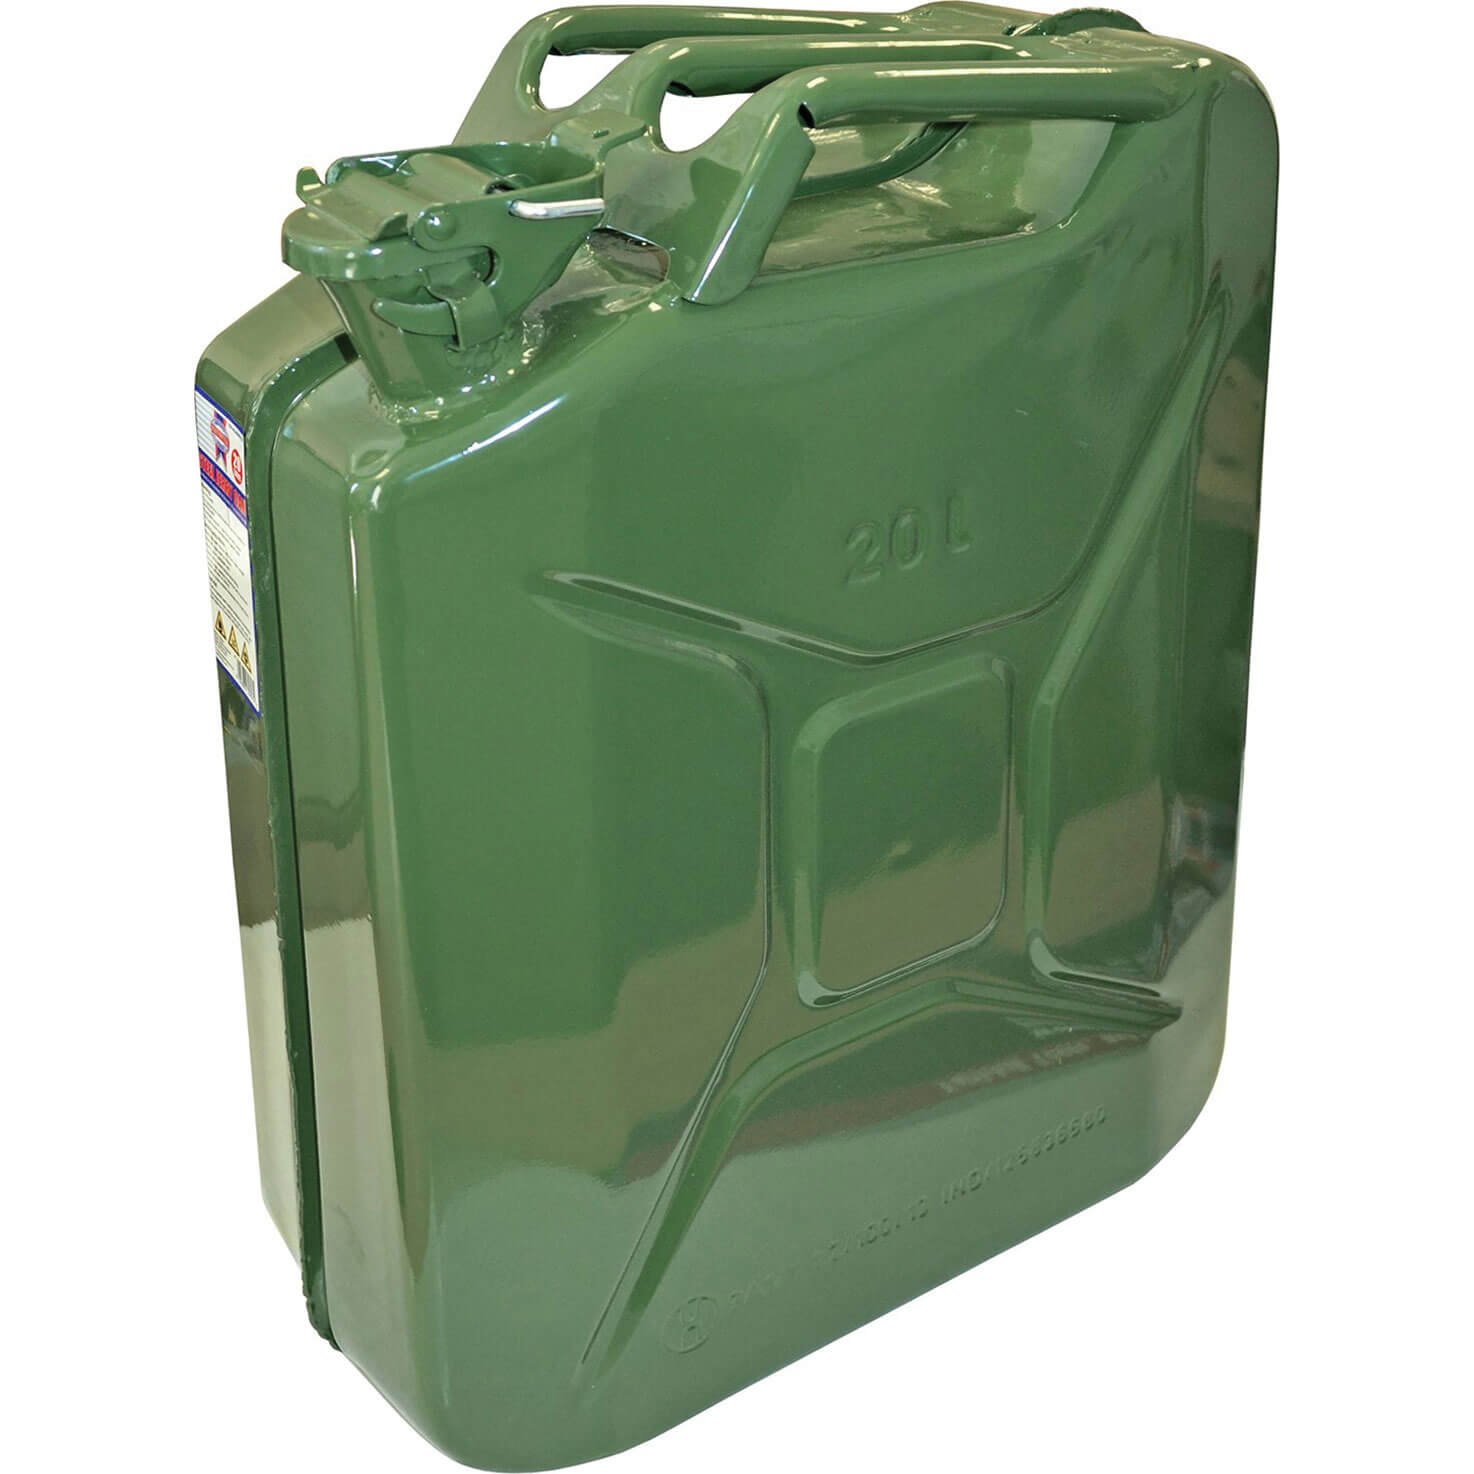 Image of Faithfull Metal Jerry Can 20l Green